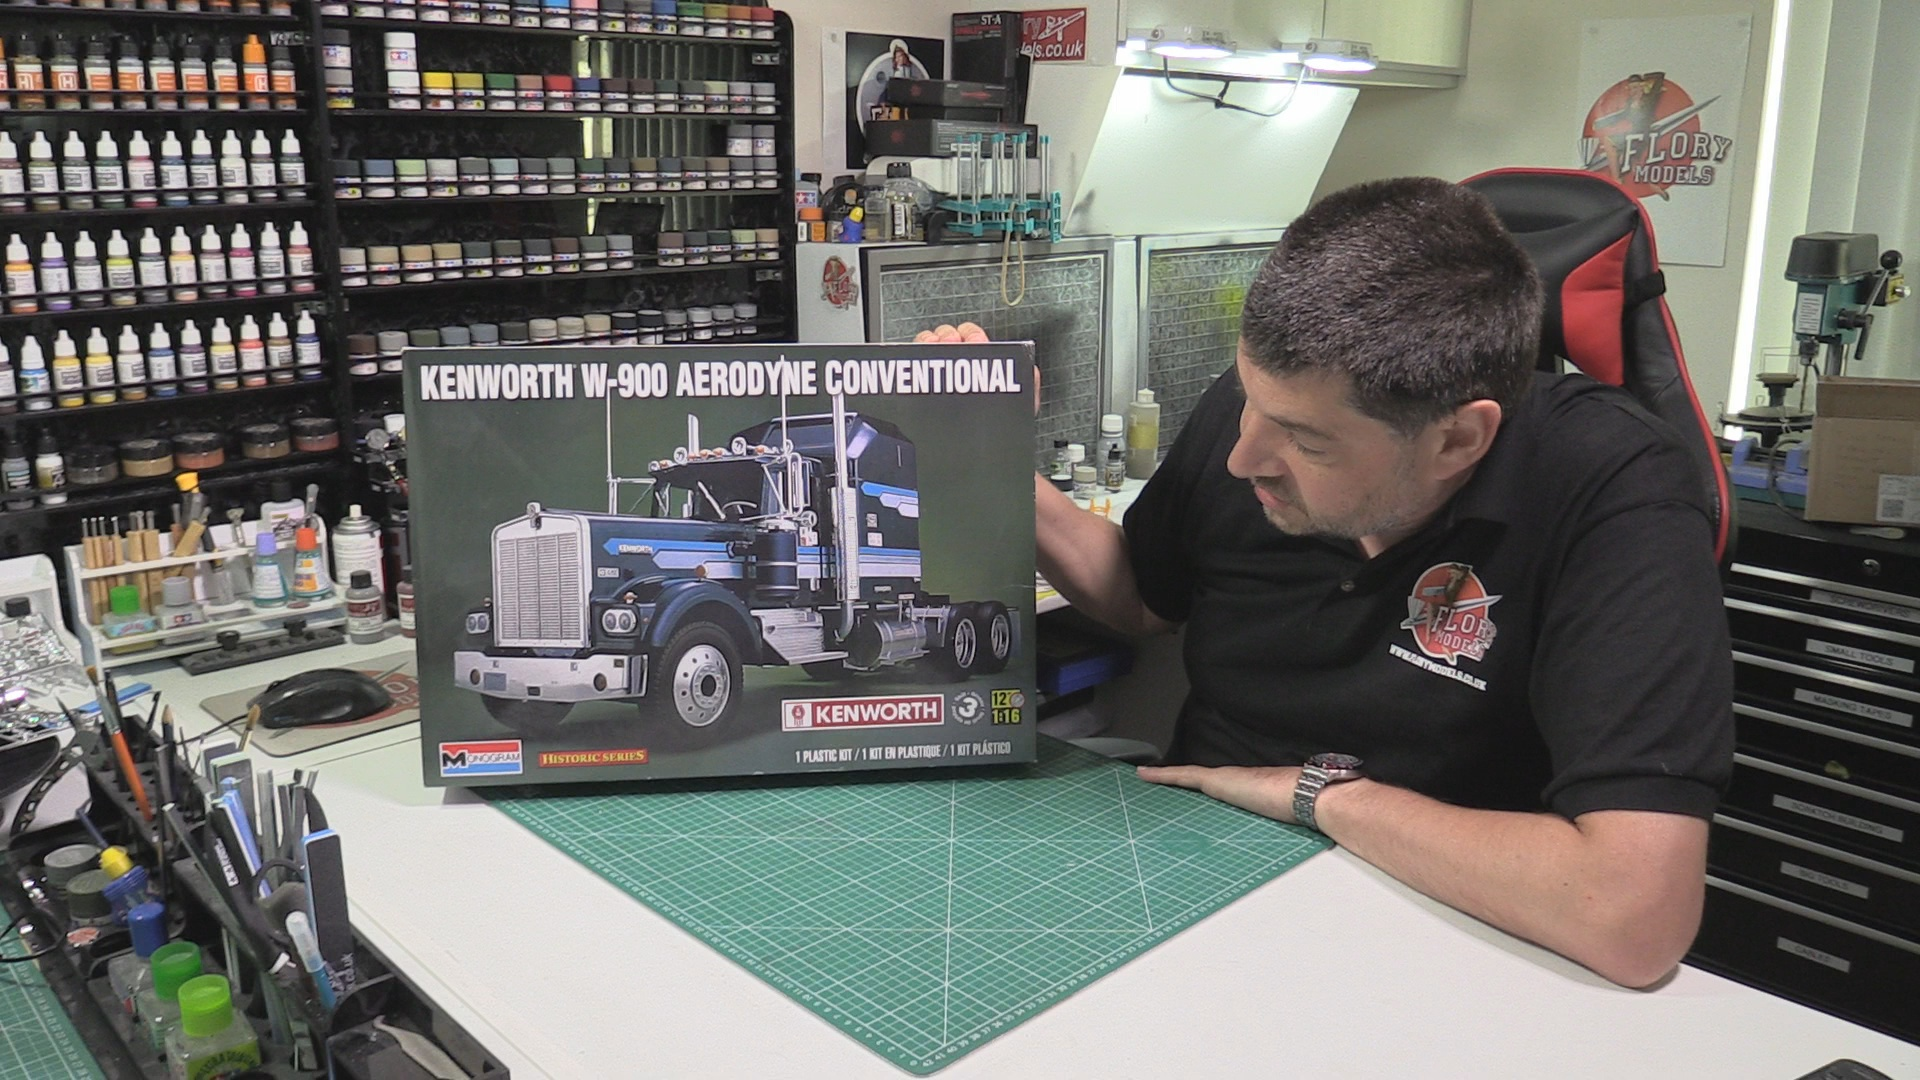 Kenworth W-900 Scale: 1/16   Manufacturer: Monogram   Parts used: Out Of The Box   Main paints used: Tamiya and Xtream Metals